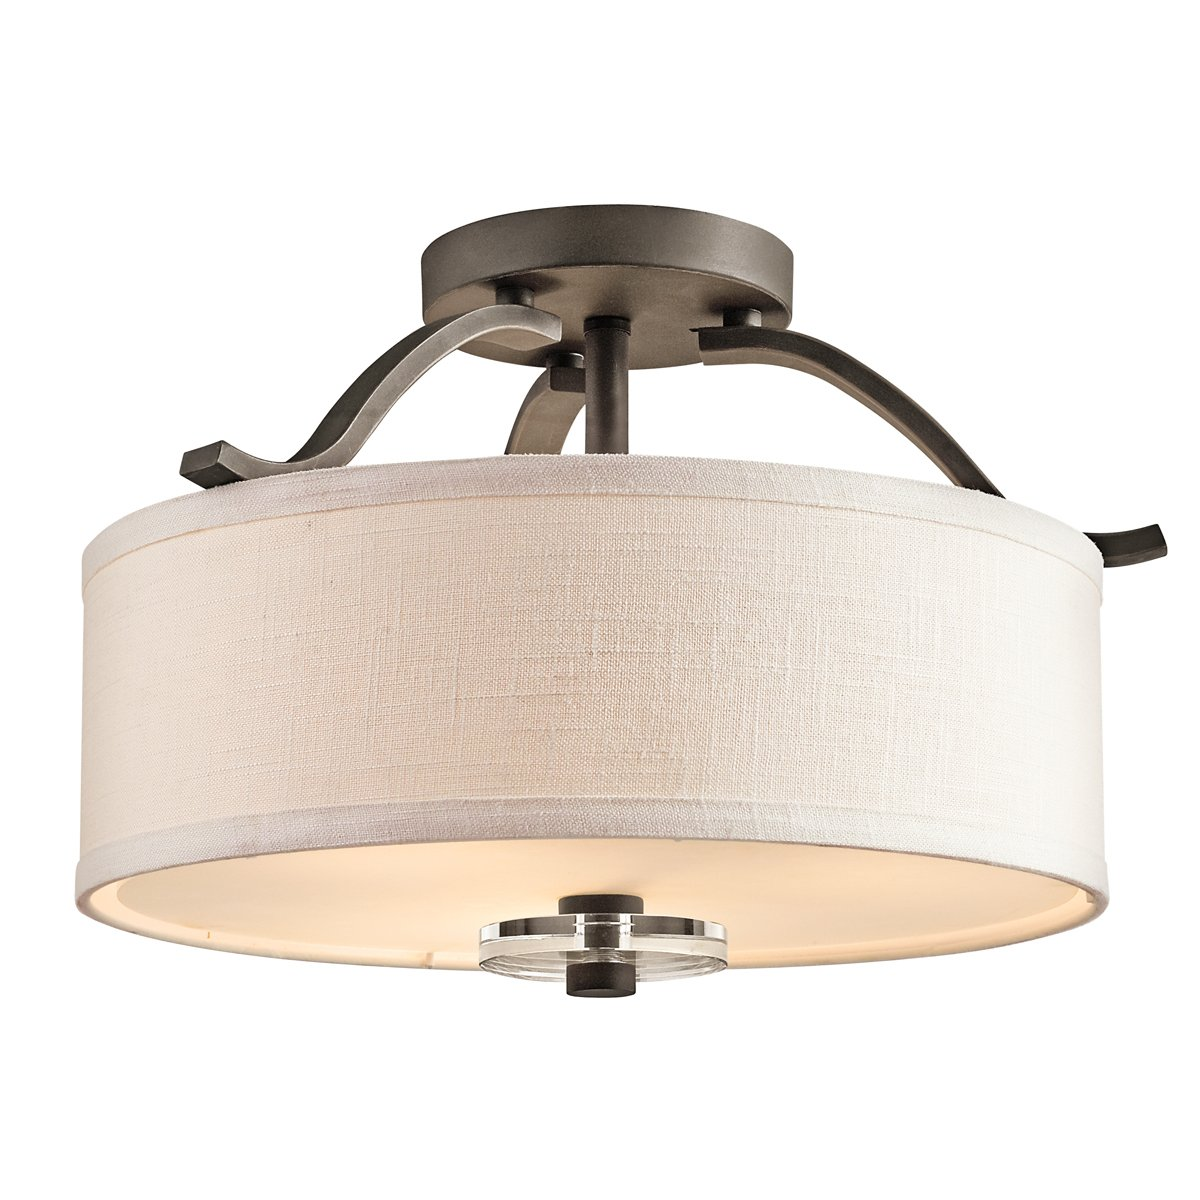 Kichler 42485oz three light semi flush mount semi flush mount kichler 42485oz three light semi flush mount semi flush mount ceiling light fixtures amazon aloadofball Gallery